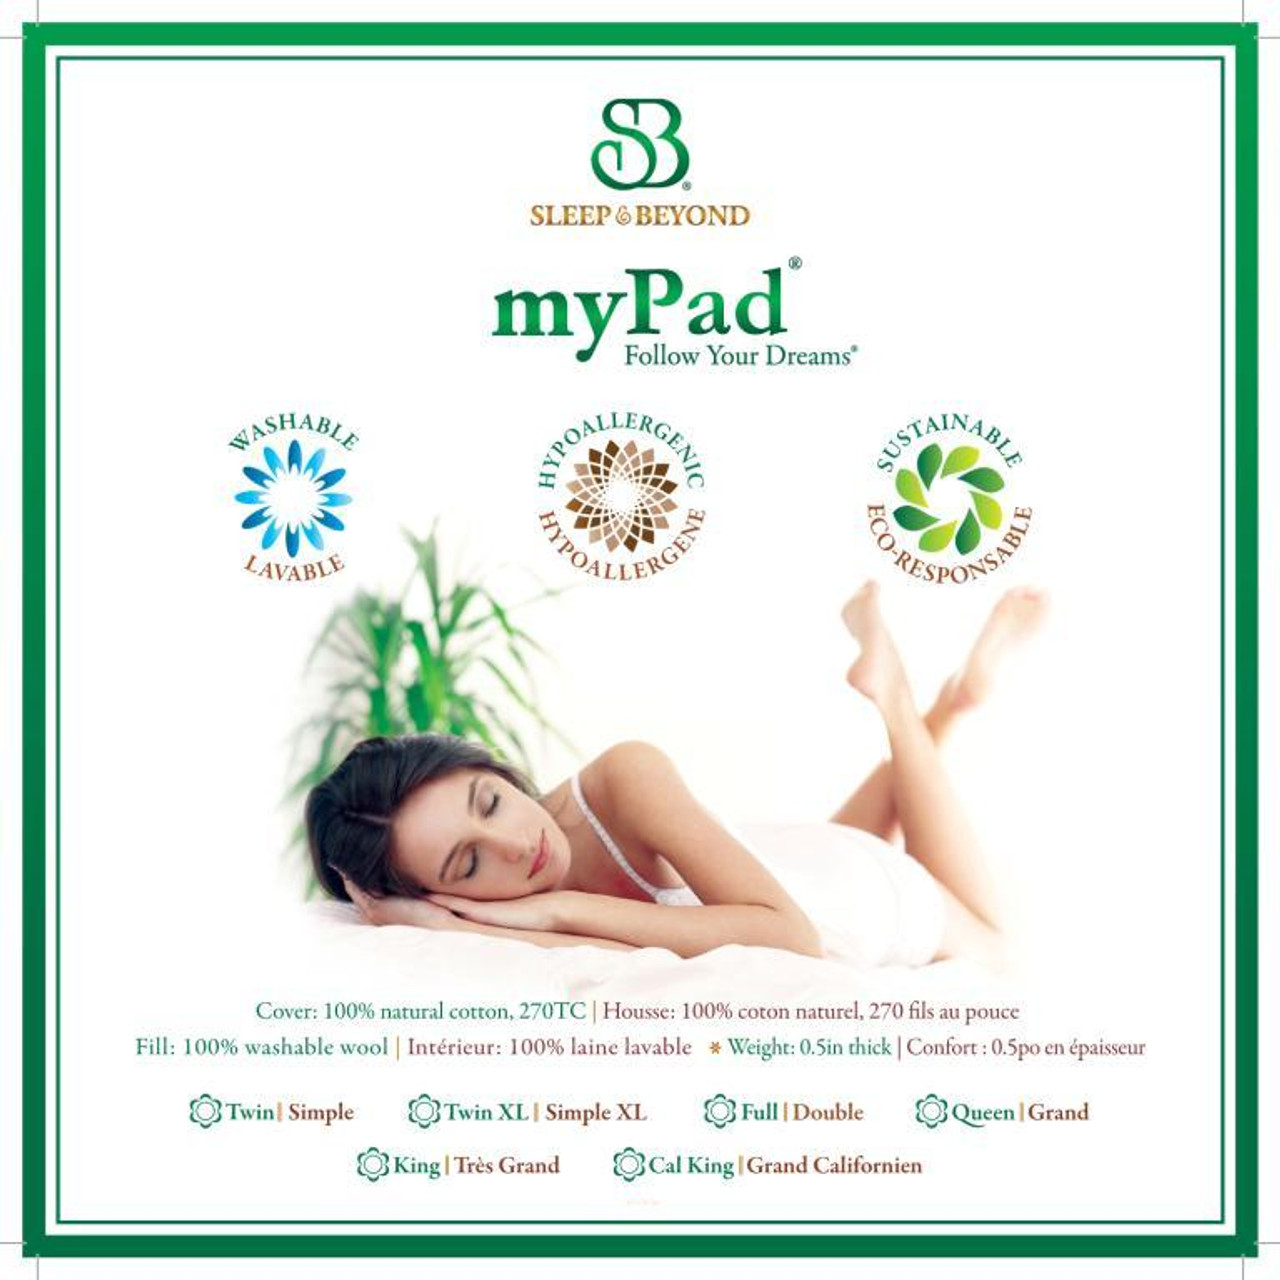 Sleep & Beyond myPad 100% Washable Wool Mattress Pad Front Package